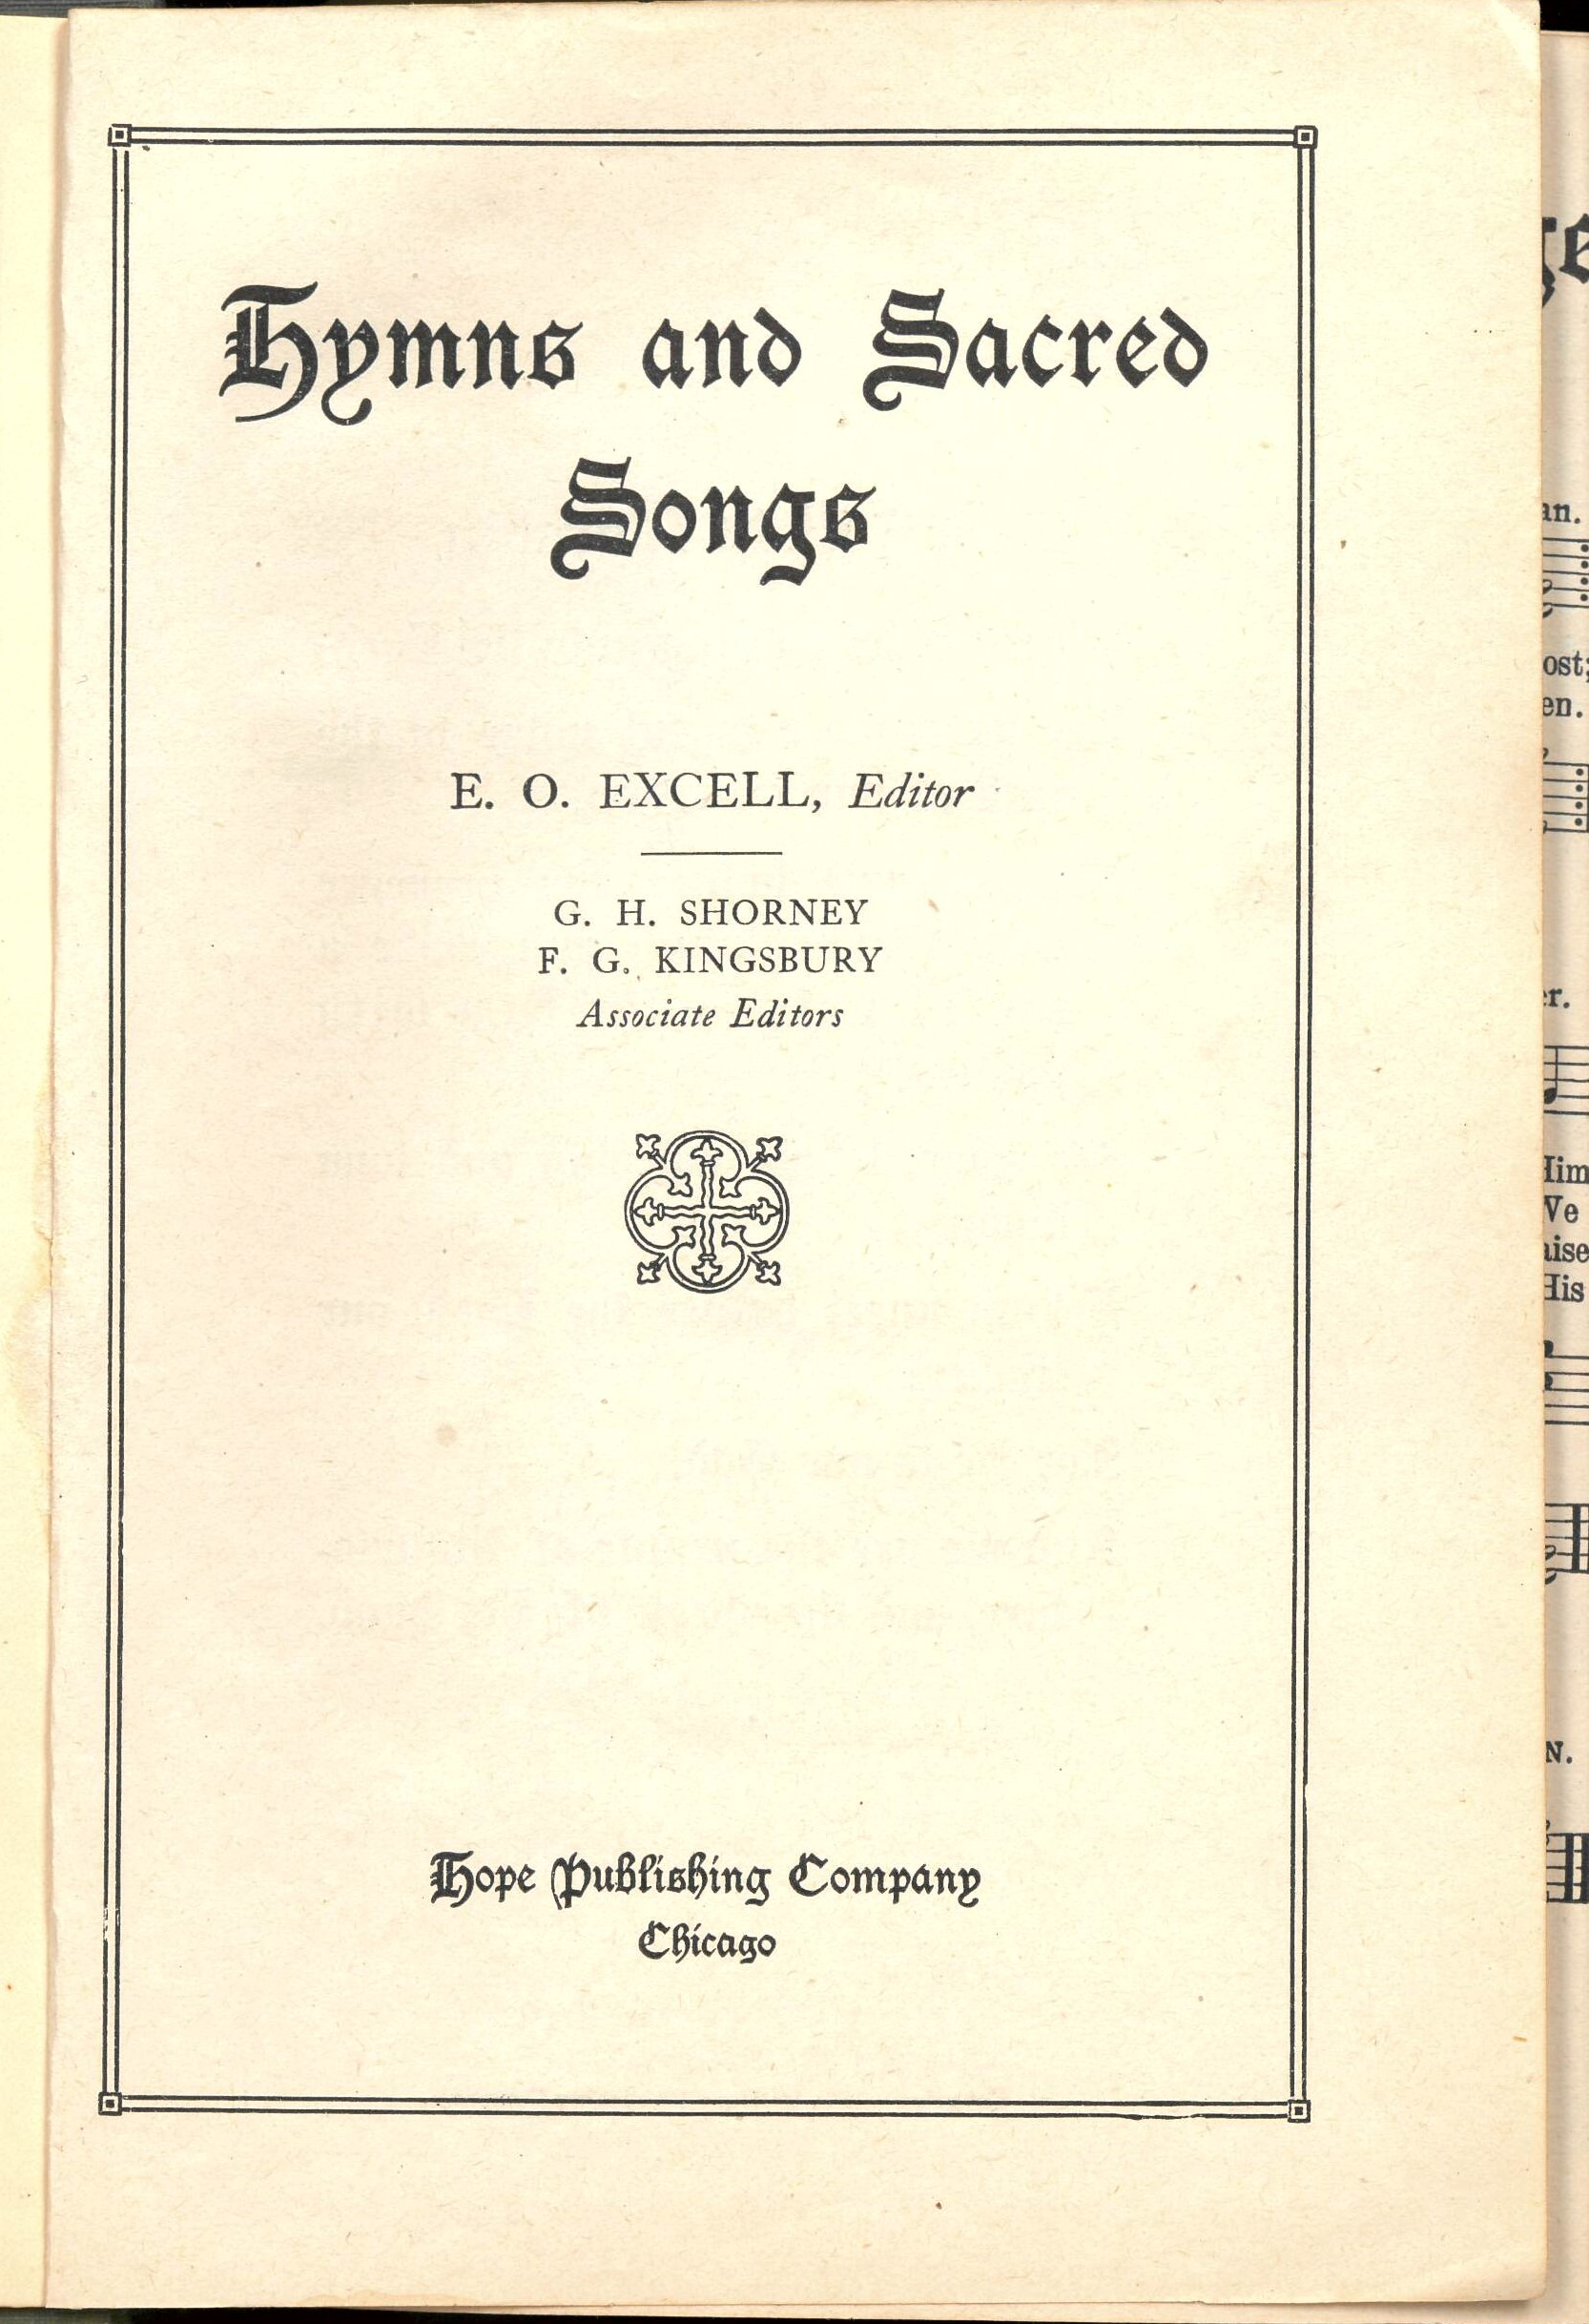 Hymns and Sacred Songs. E. O. Excell, Editor. Hope Publishing Company: Chicago,1918. Title page.